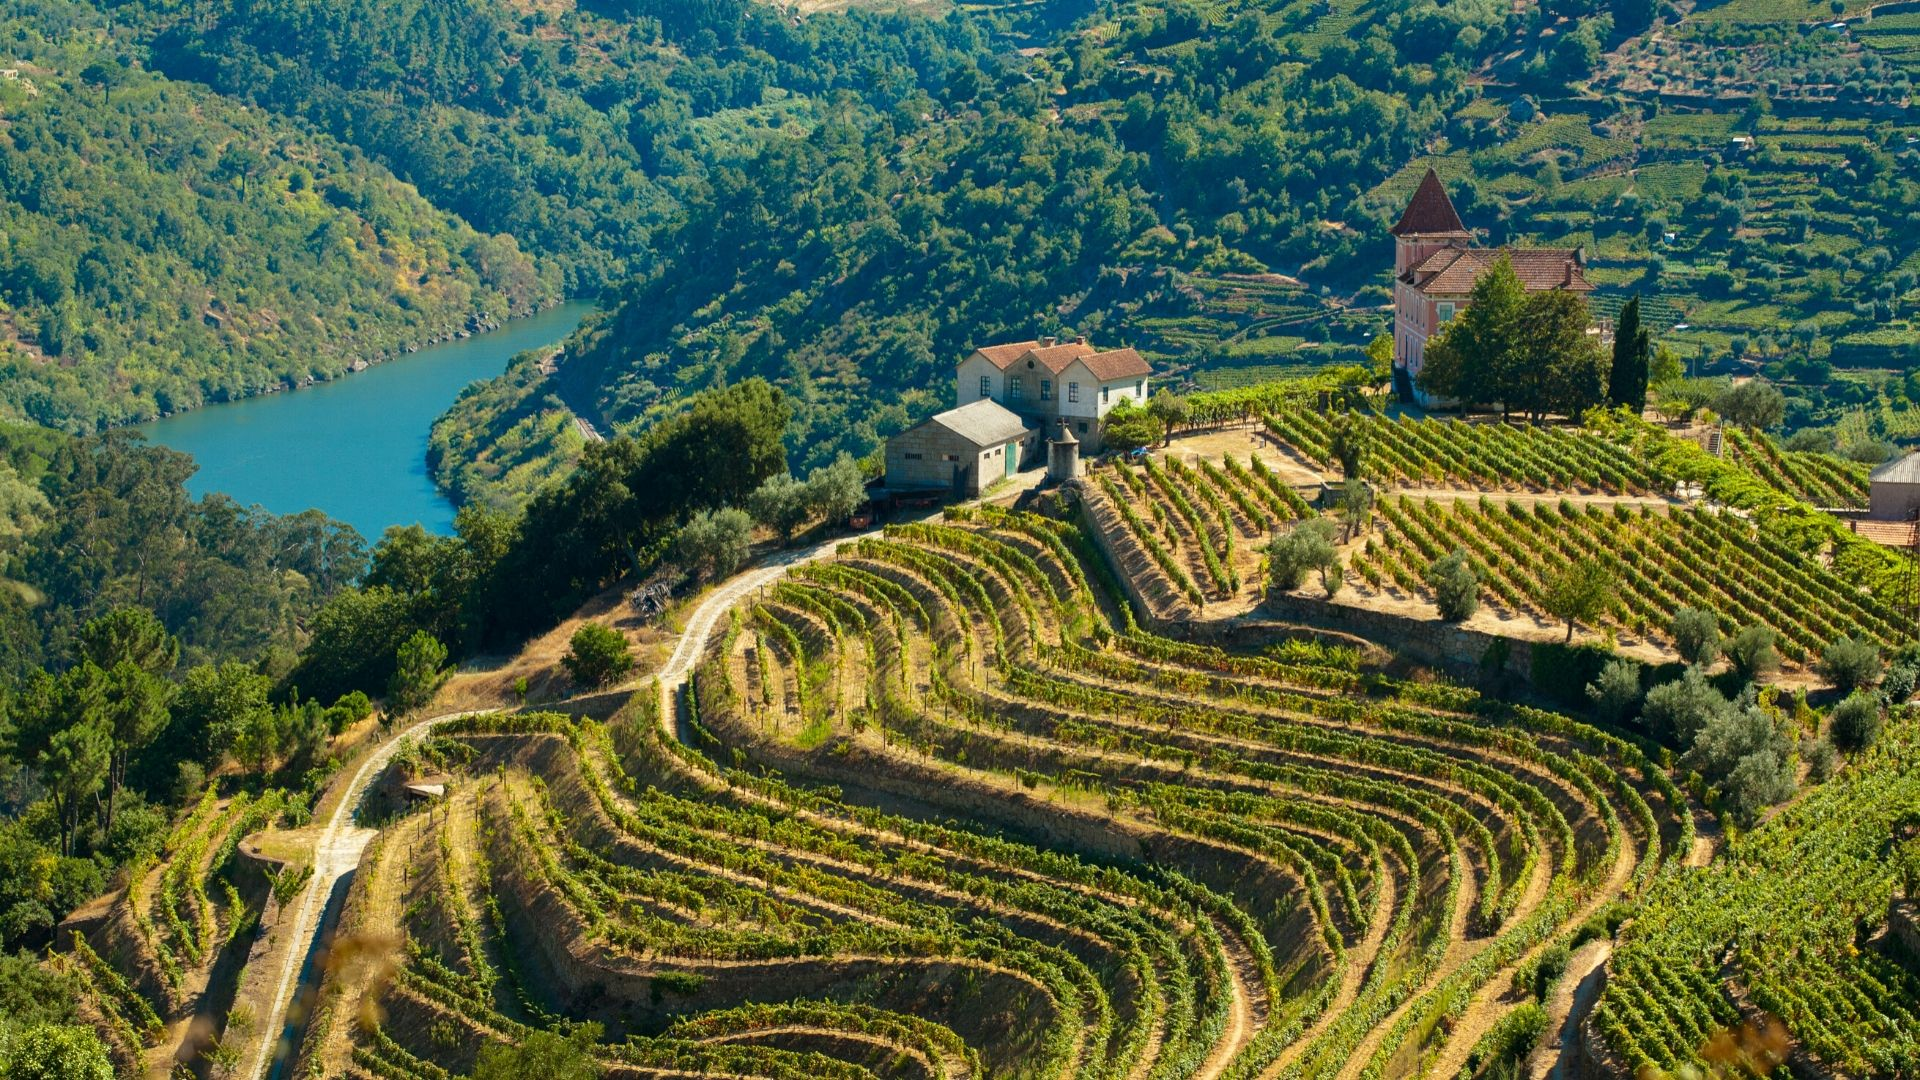 Terraced vineyards in the Douro Valley In Portugal